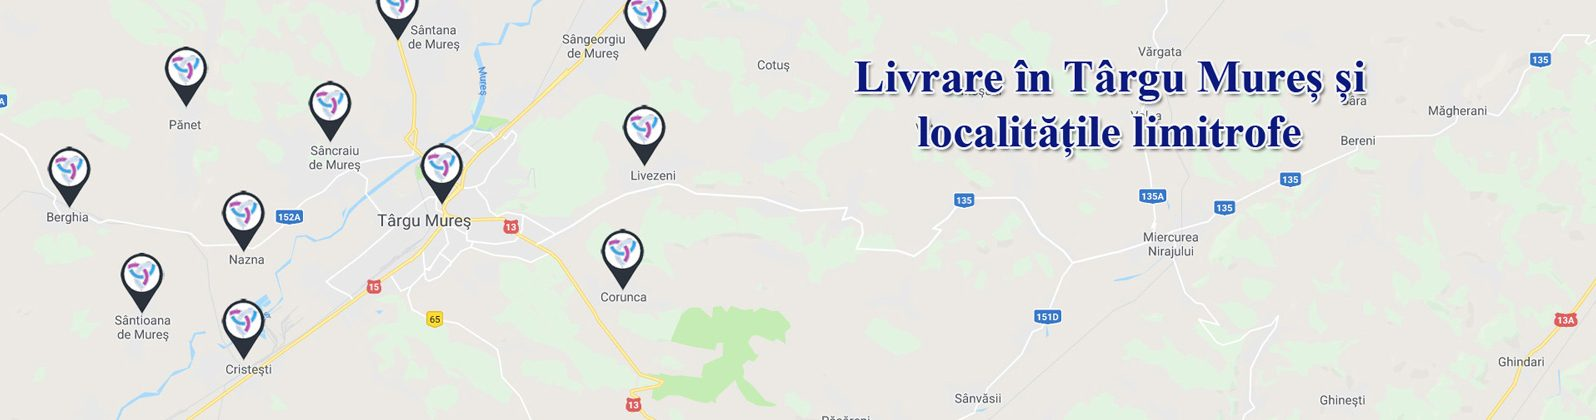 Livrare in Tg. Mures